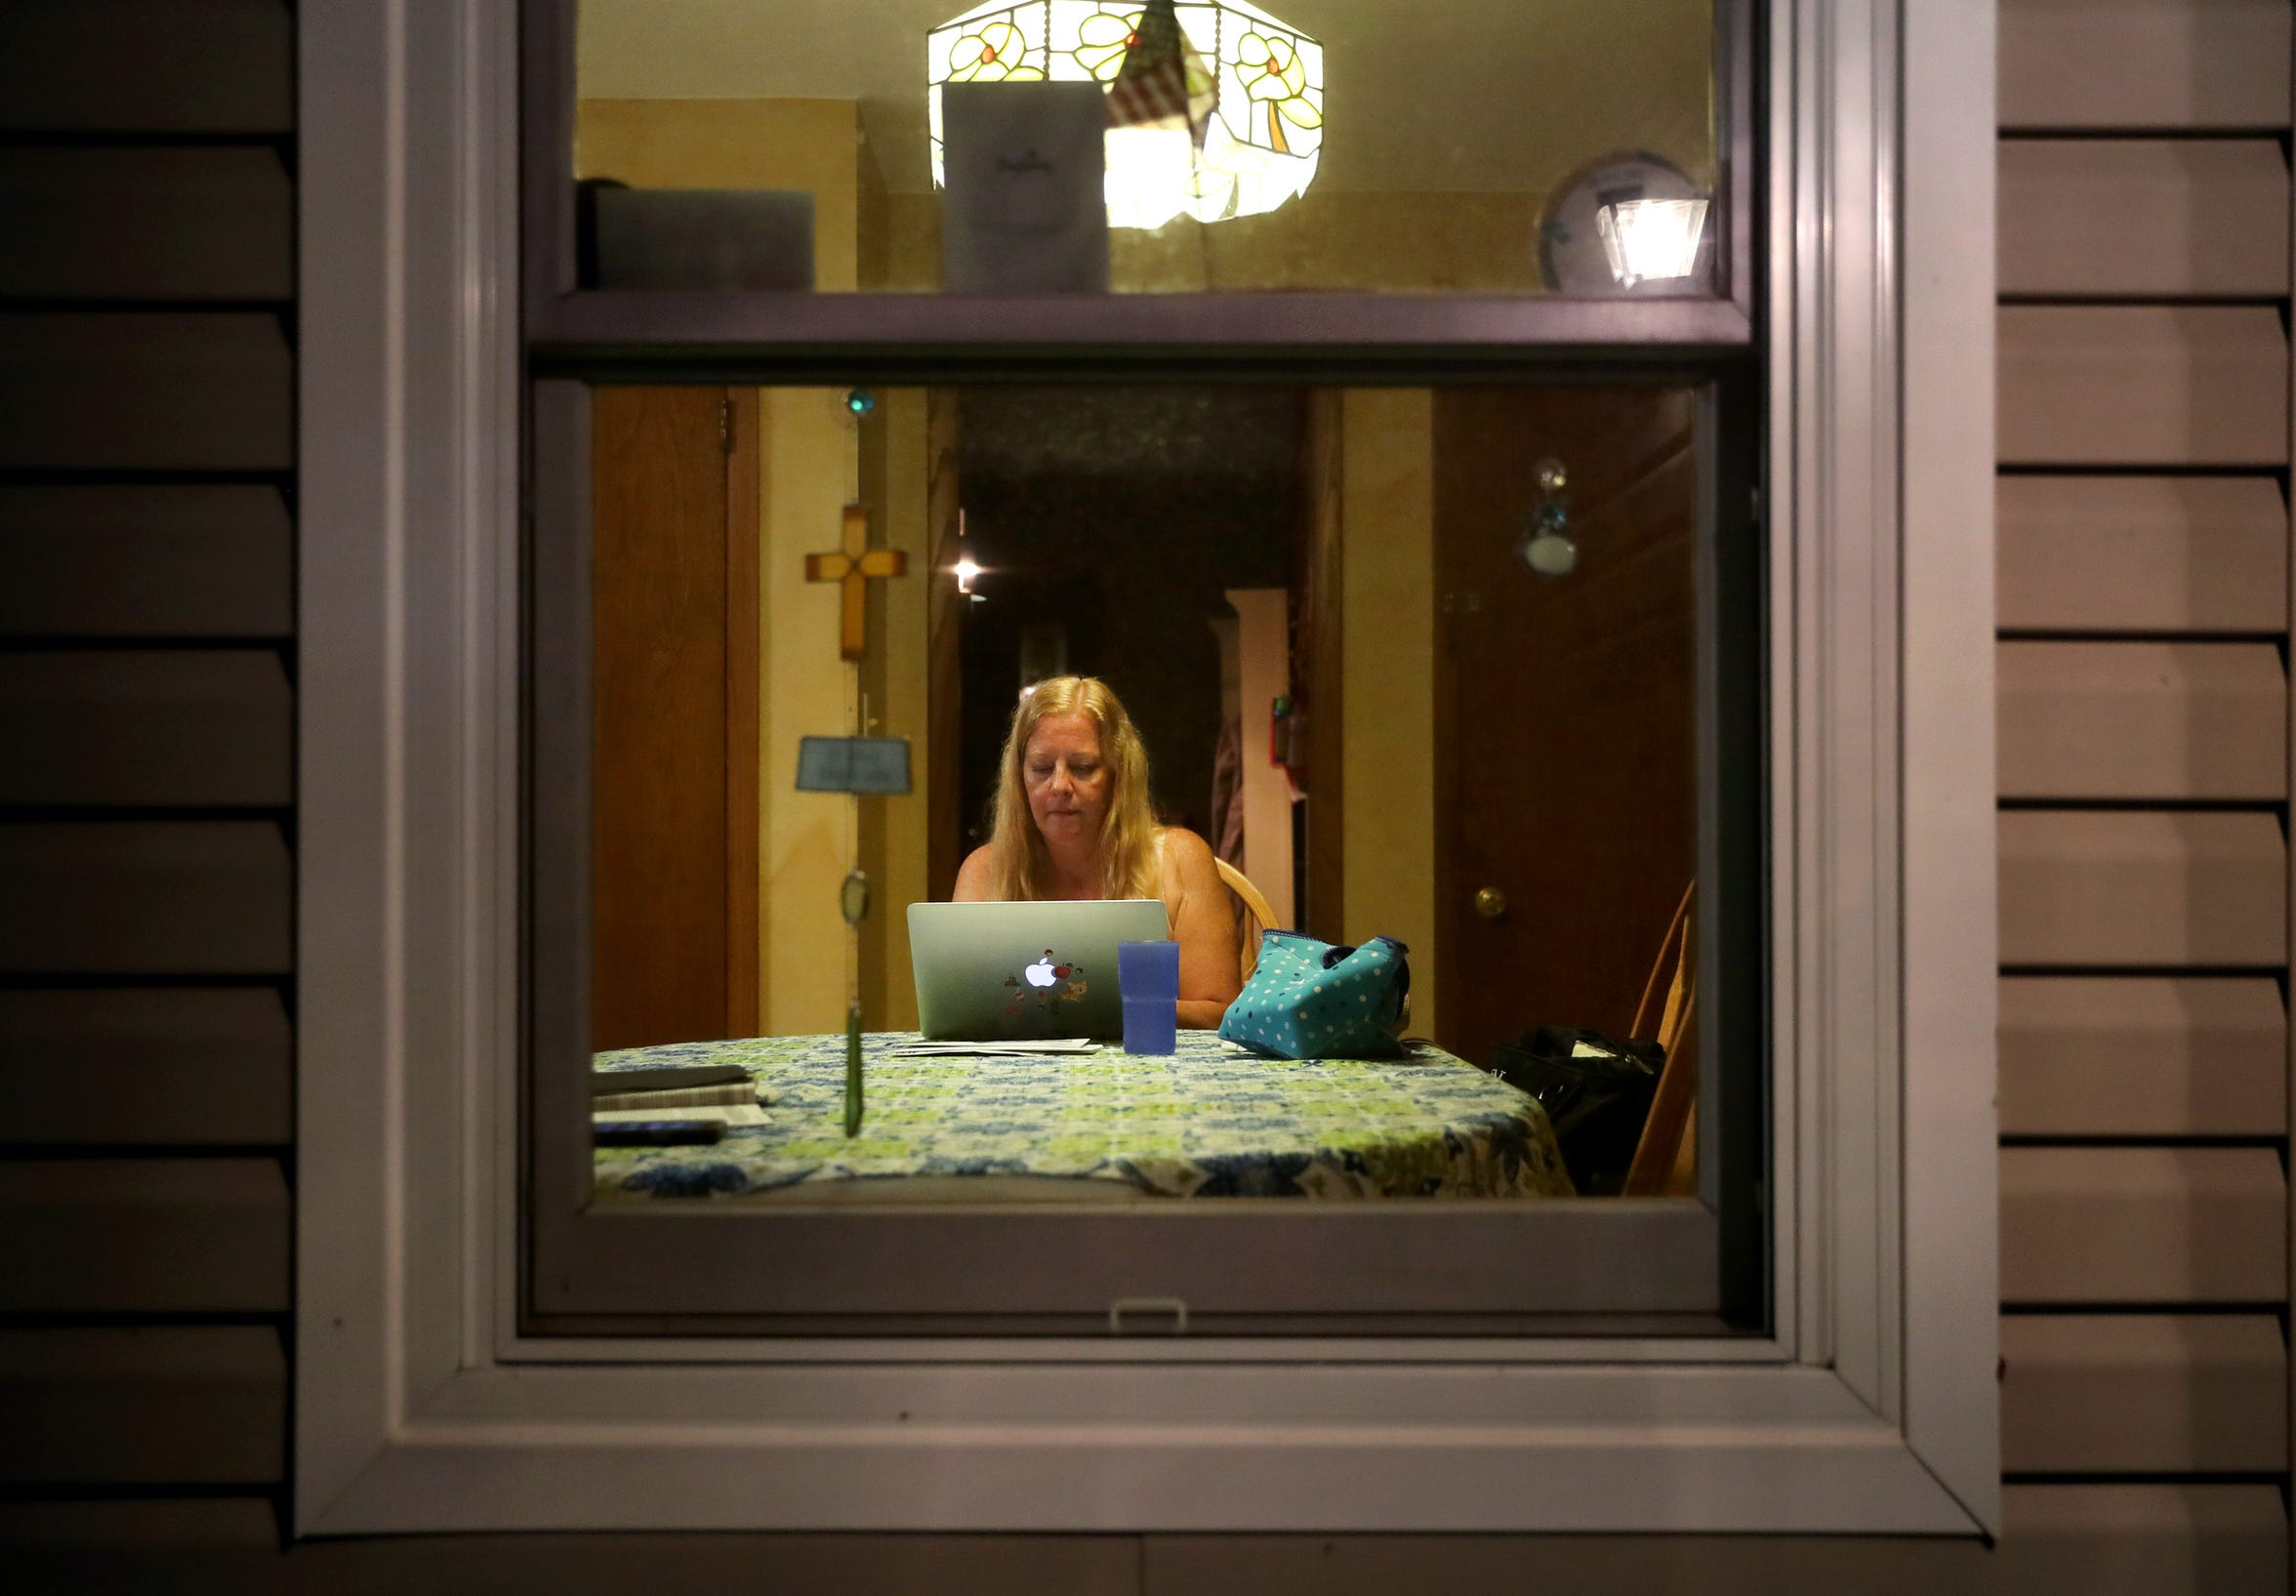 Maripat Franke, a special education teacher at Neenah High School currently enrolled in the Residency In Teacher Education 2.0 program at CESA 6, can be seen through her kitchen window checking emails after finishing her workday and teaching a baton twirling class at the Neenah/Menasha YMCA on  Sept. 17, 2018, in Neenah, Wis. Danny Damiani/USA TODAY NETWORK-Wisconsin